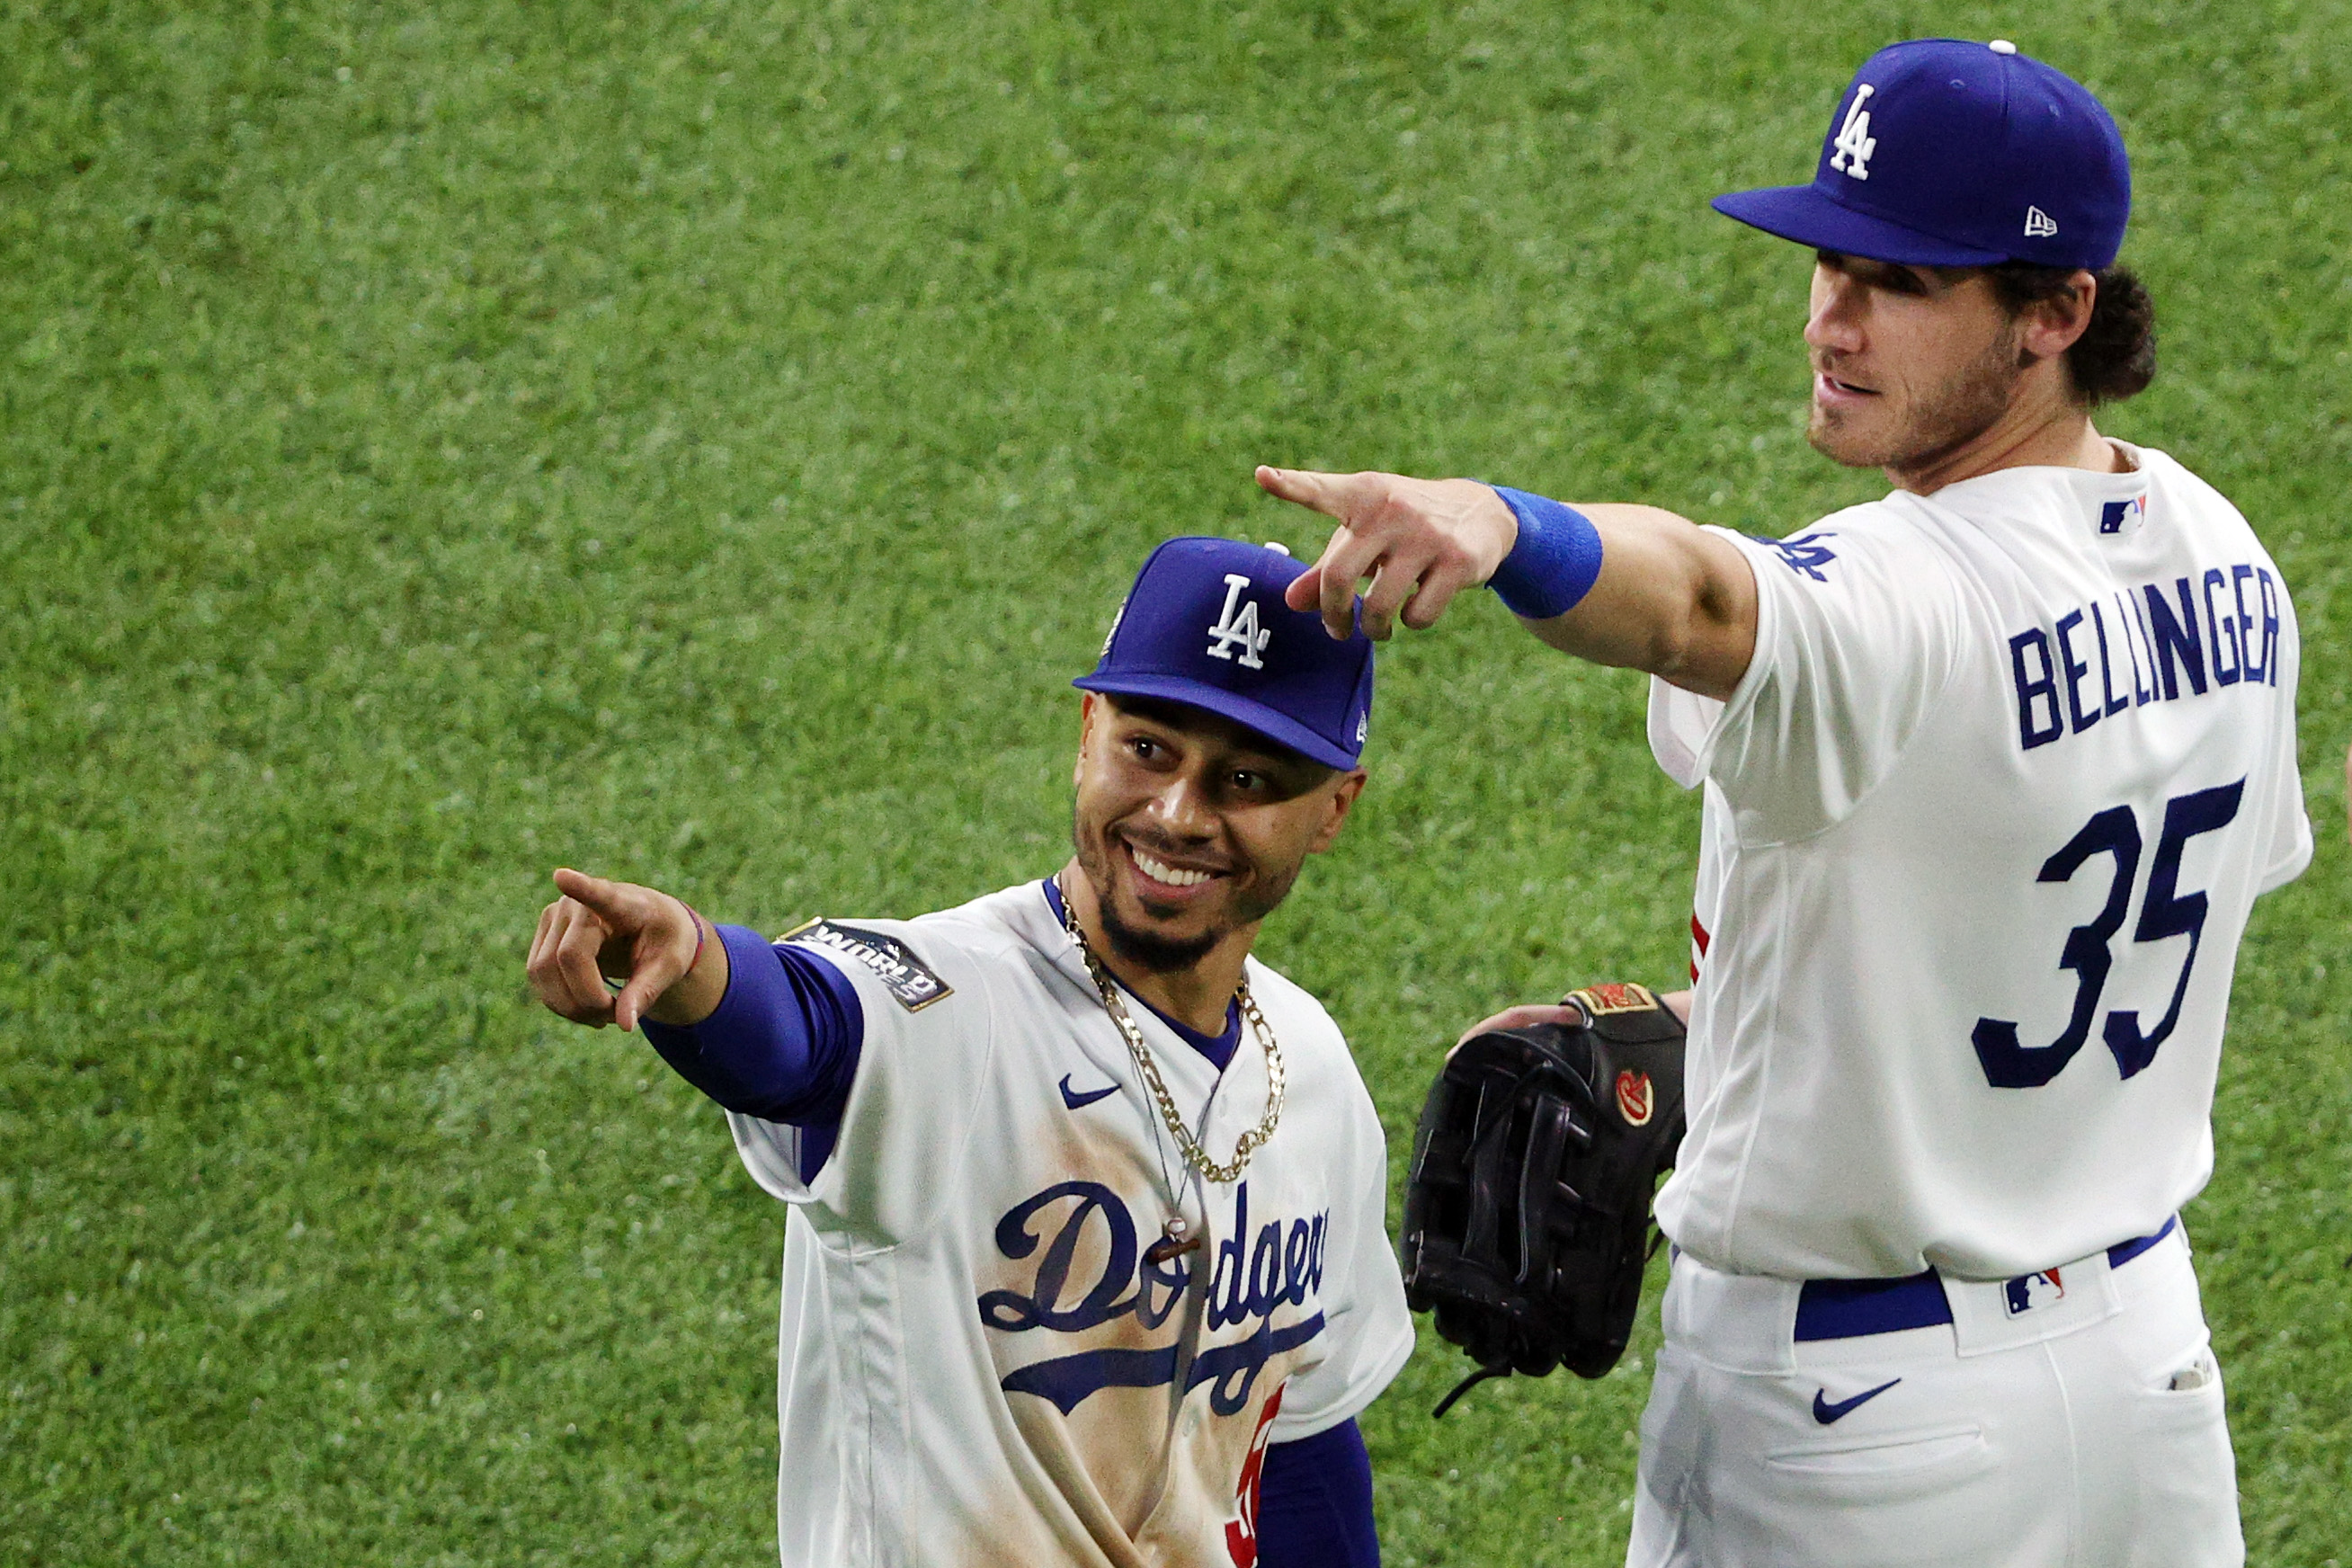 Cody Bellinger #35 and Mookie Betts #50 of the Los Angeles Dodgers celebrate